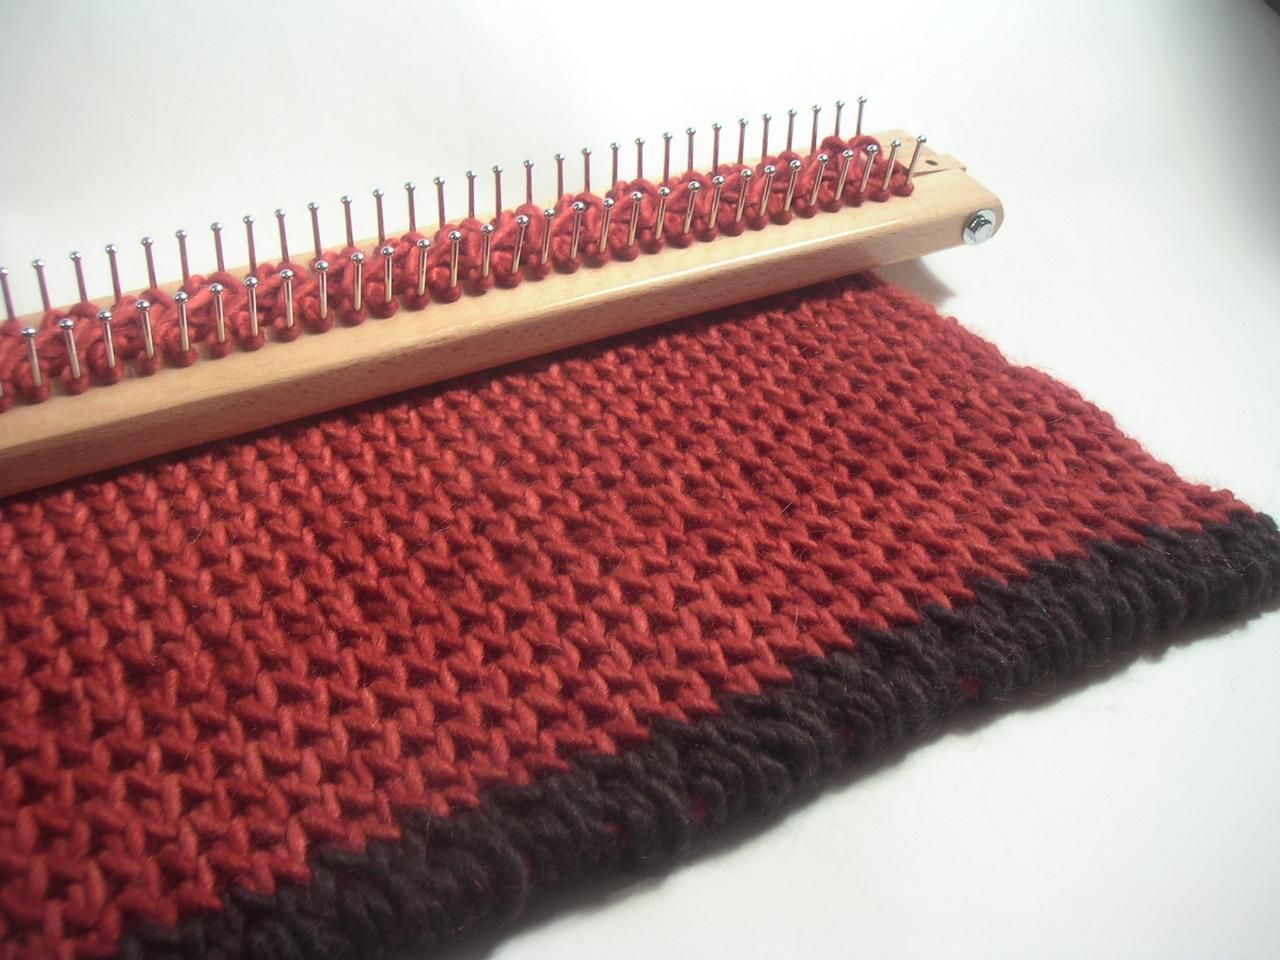 Free Knitted Placemat Patterns : Free Knitting Board Patterns with the new heavy duty knitting board. I will...